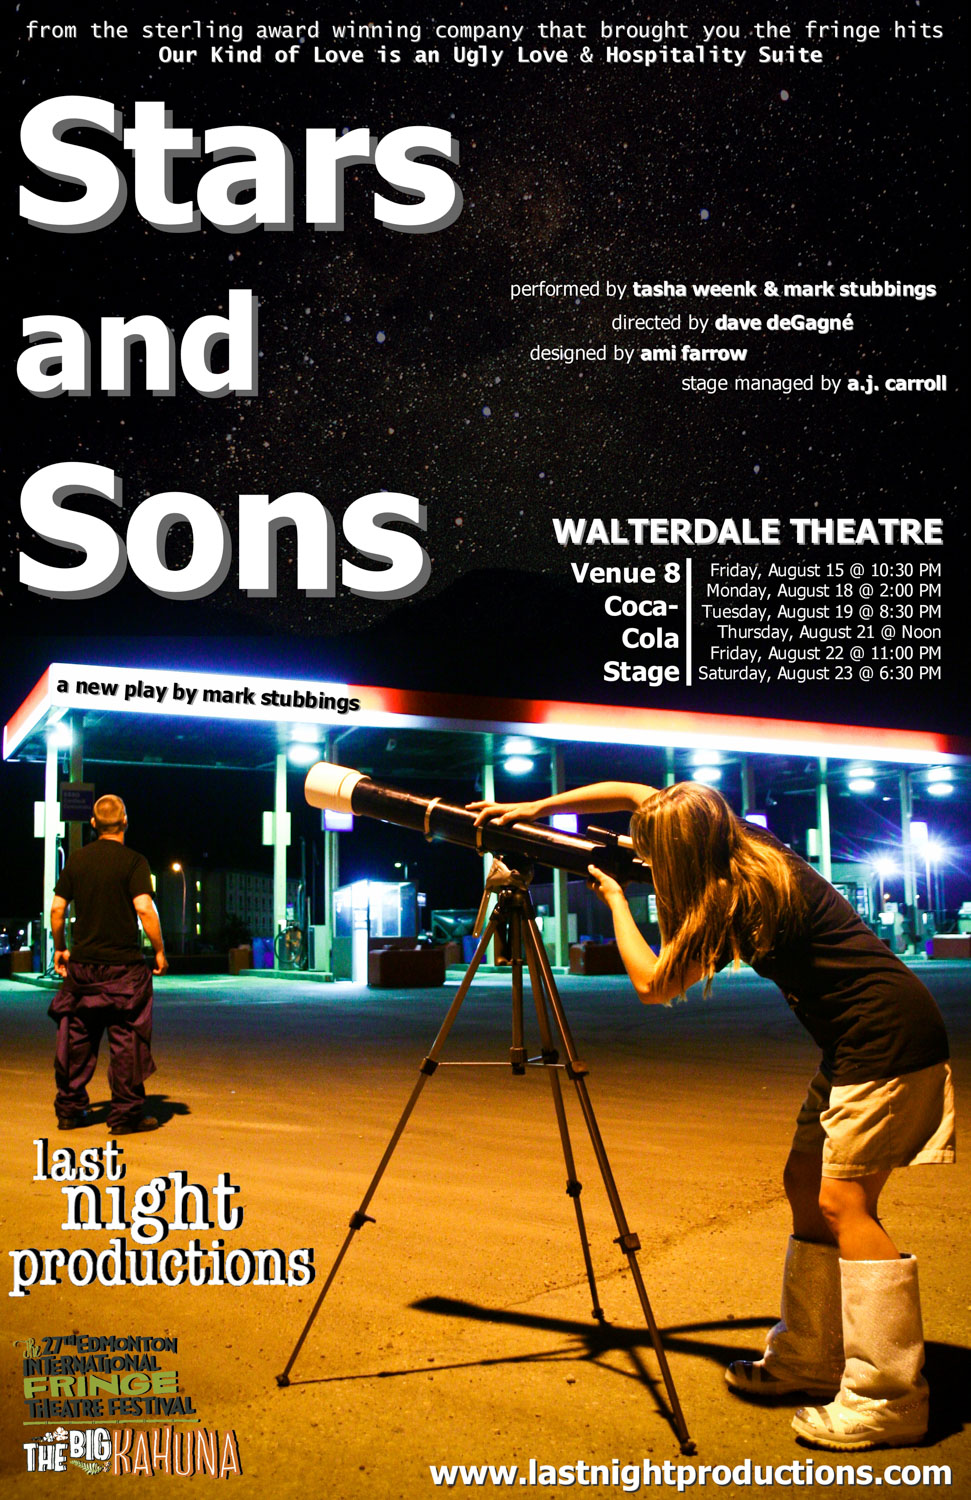 Stars and Sons Poster.jpg